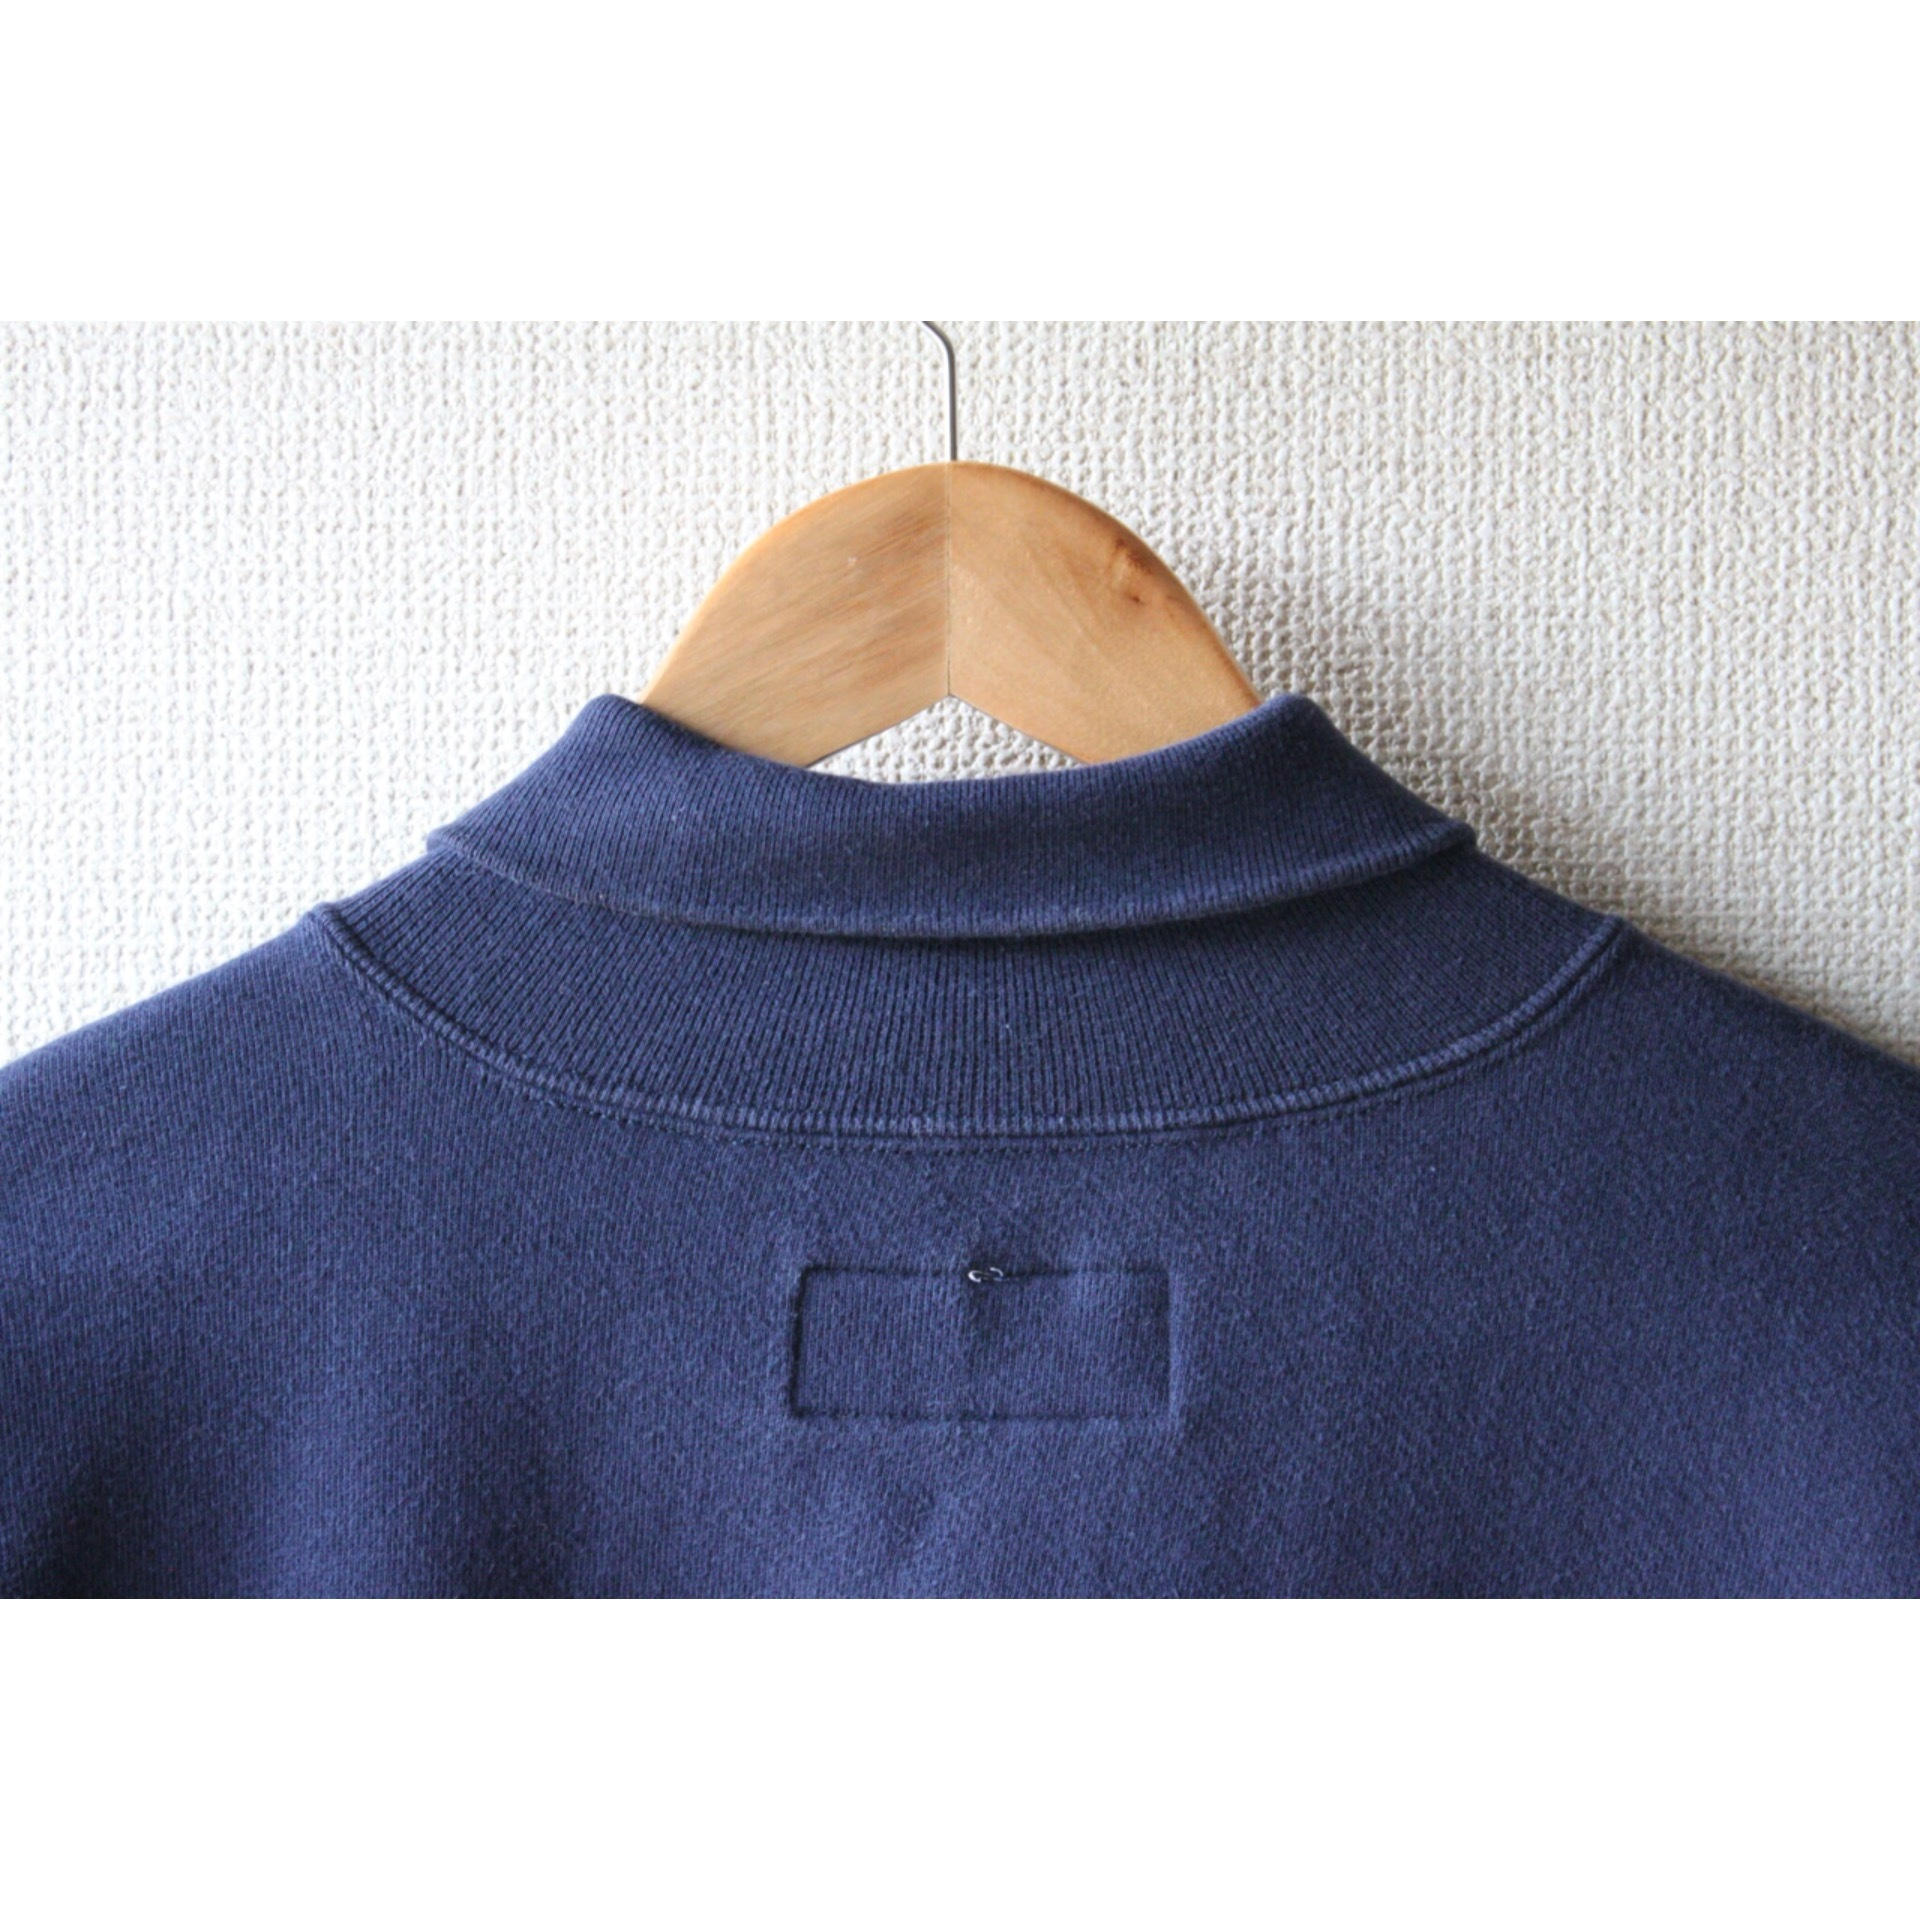 Vintage MICHIGAN turtleneck sweater